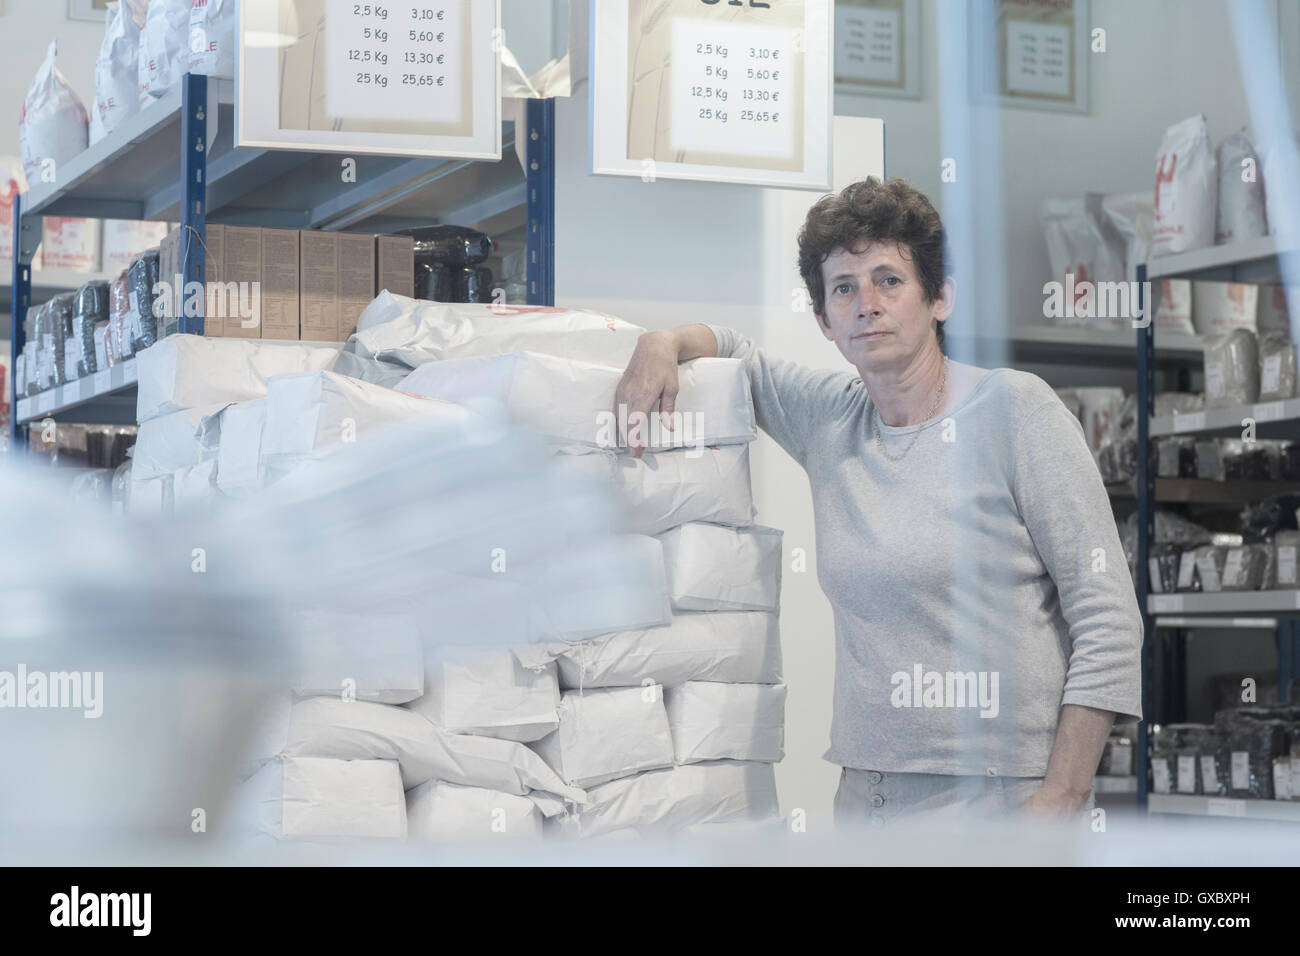 Portrait of female miller and flour sacks in wheat mill stockroom Stock Photo